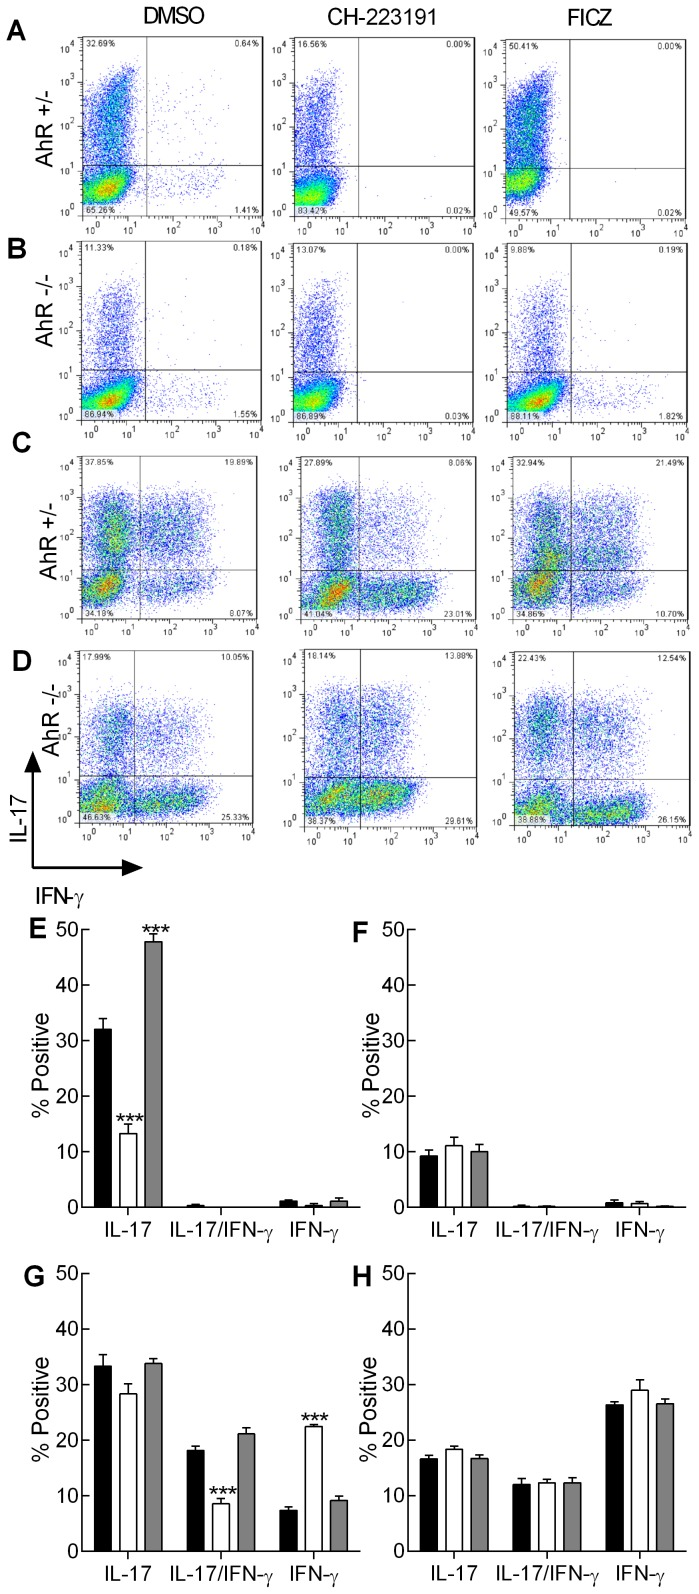 The effect of AhR modulation on Th17 and Tc17 cell frequency. Naïve CD4 +  cells from AhR +/−  (A and E) or AhR −/−  mice (B and F) and naïve CD8 +  cells from AhR +/−  (C and G) or AhR −/−  mice (D and H) were polarised under Th17/Tc17 conditions for 5 days. Cells were then stimulated with PdBU and ionomycin in the presence of brefeldin A. The polarised cells were then permeabilised and stained using fluorescent anti-IL-17A (PE [Y-axis]) and -IFN-γ (APC [X-axis]) labelled antibodies. Cells (25000) were analysed by flow cytometry. The cells were cultured in the presence of AhR antagonist (CH-223191) (white bar) or AhR agonist (FICZ) (grey bar) both formulated in DMSO or with an equivalent amount of DMSO alone (black bar). Representative quadrant analyses are illustrated (A–D). The percentage of cells positive for IL-17, IL-17 and IFN-γ or IFN-γ alone was calculated by subtracting the isotype controls from the positive cells in each quadrant and are illustrated as % positive cells (E-H; mean ± SE; n=3 independent experiments). Statistical significance of differences between DMSO control and AhR antagonist/agonist treated cells was analysed by one-way ANOVA. ***,  p